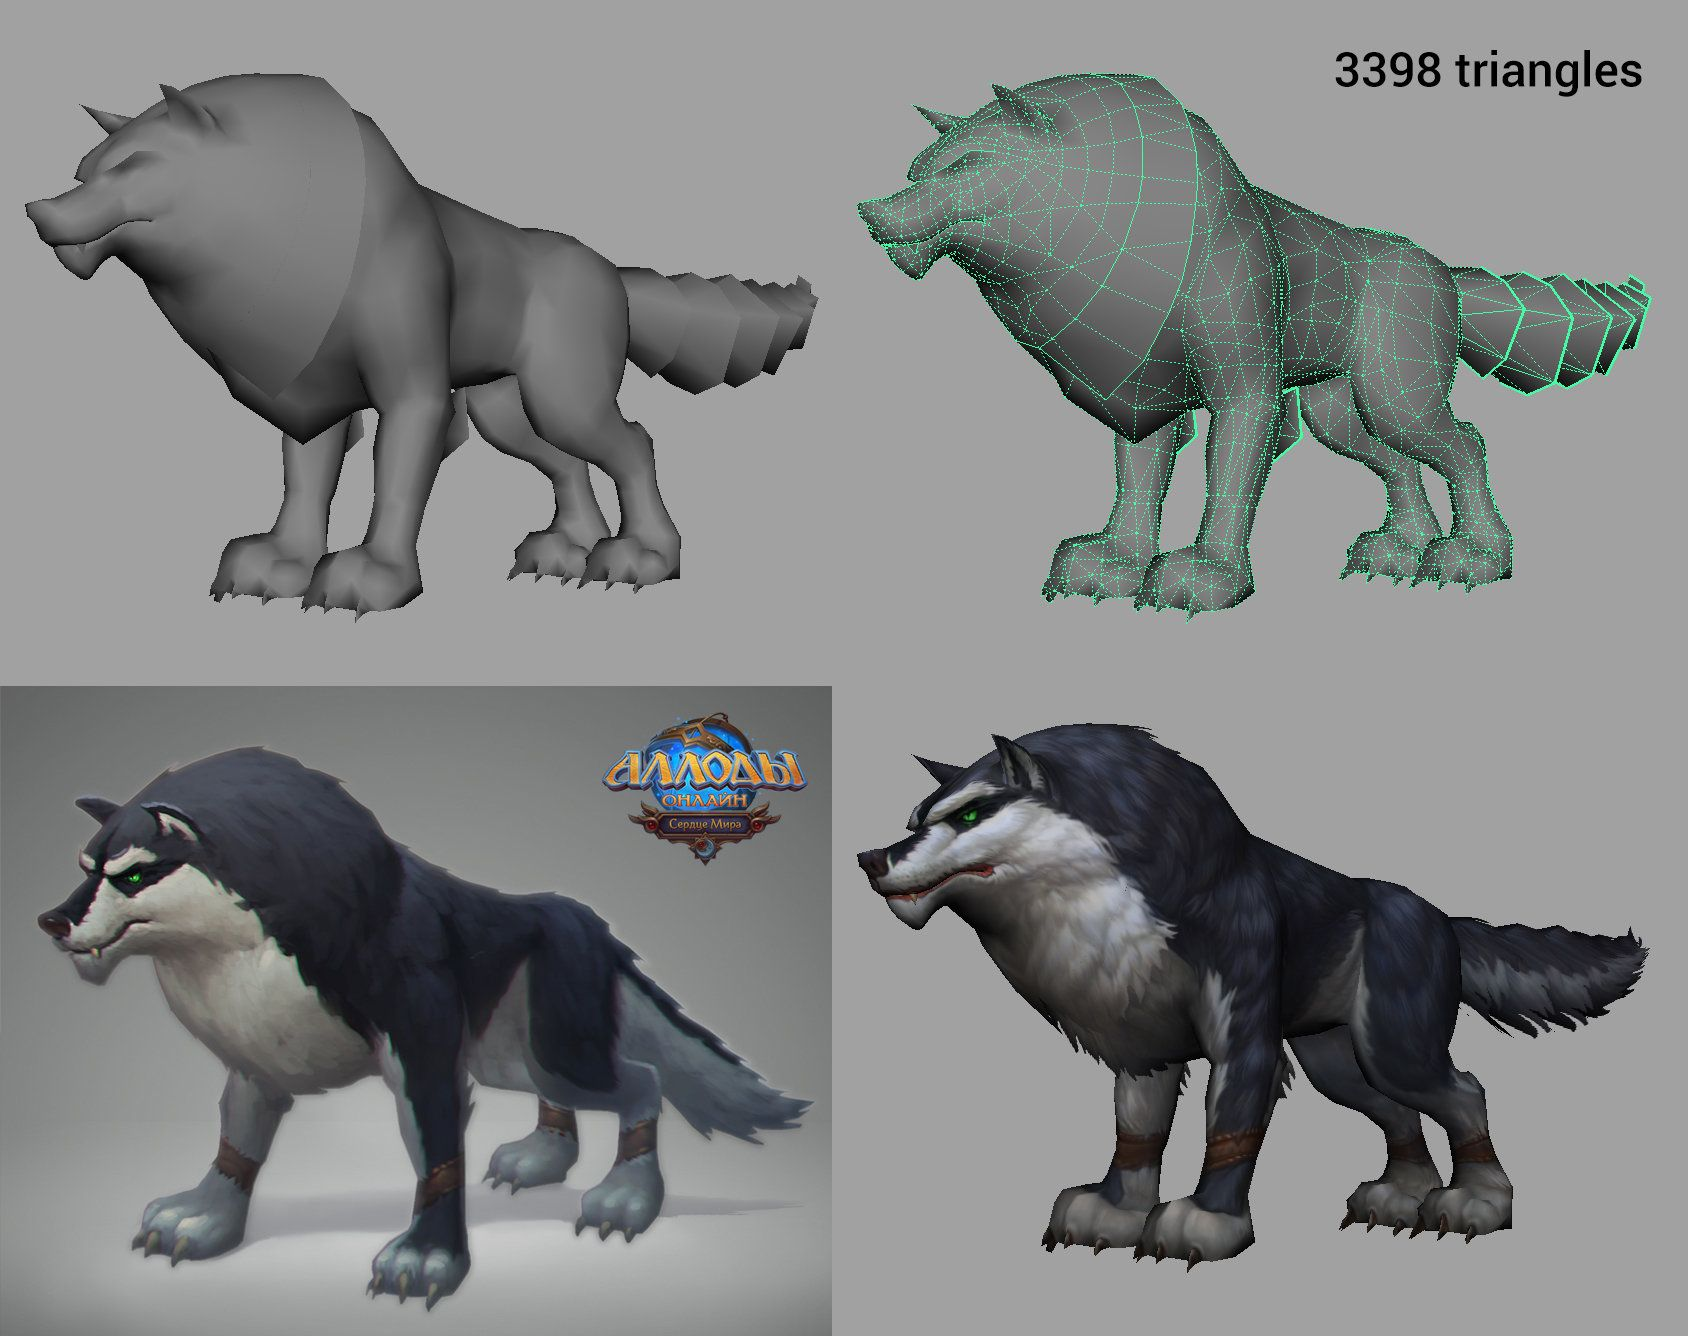 Creature For The Project Allods Online I Did Only 3d Models Concept And Textures Presented Here Just For Illu Creature Design Low Poly Art 3d Model Character